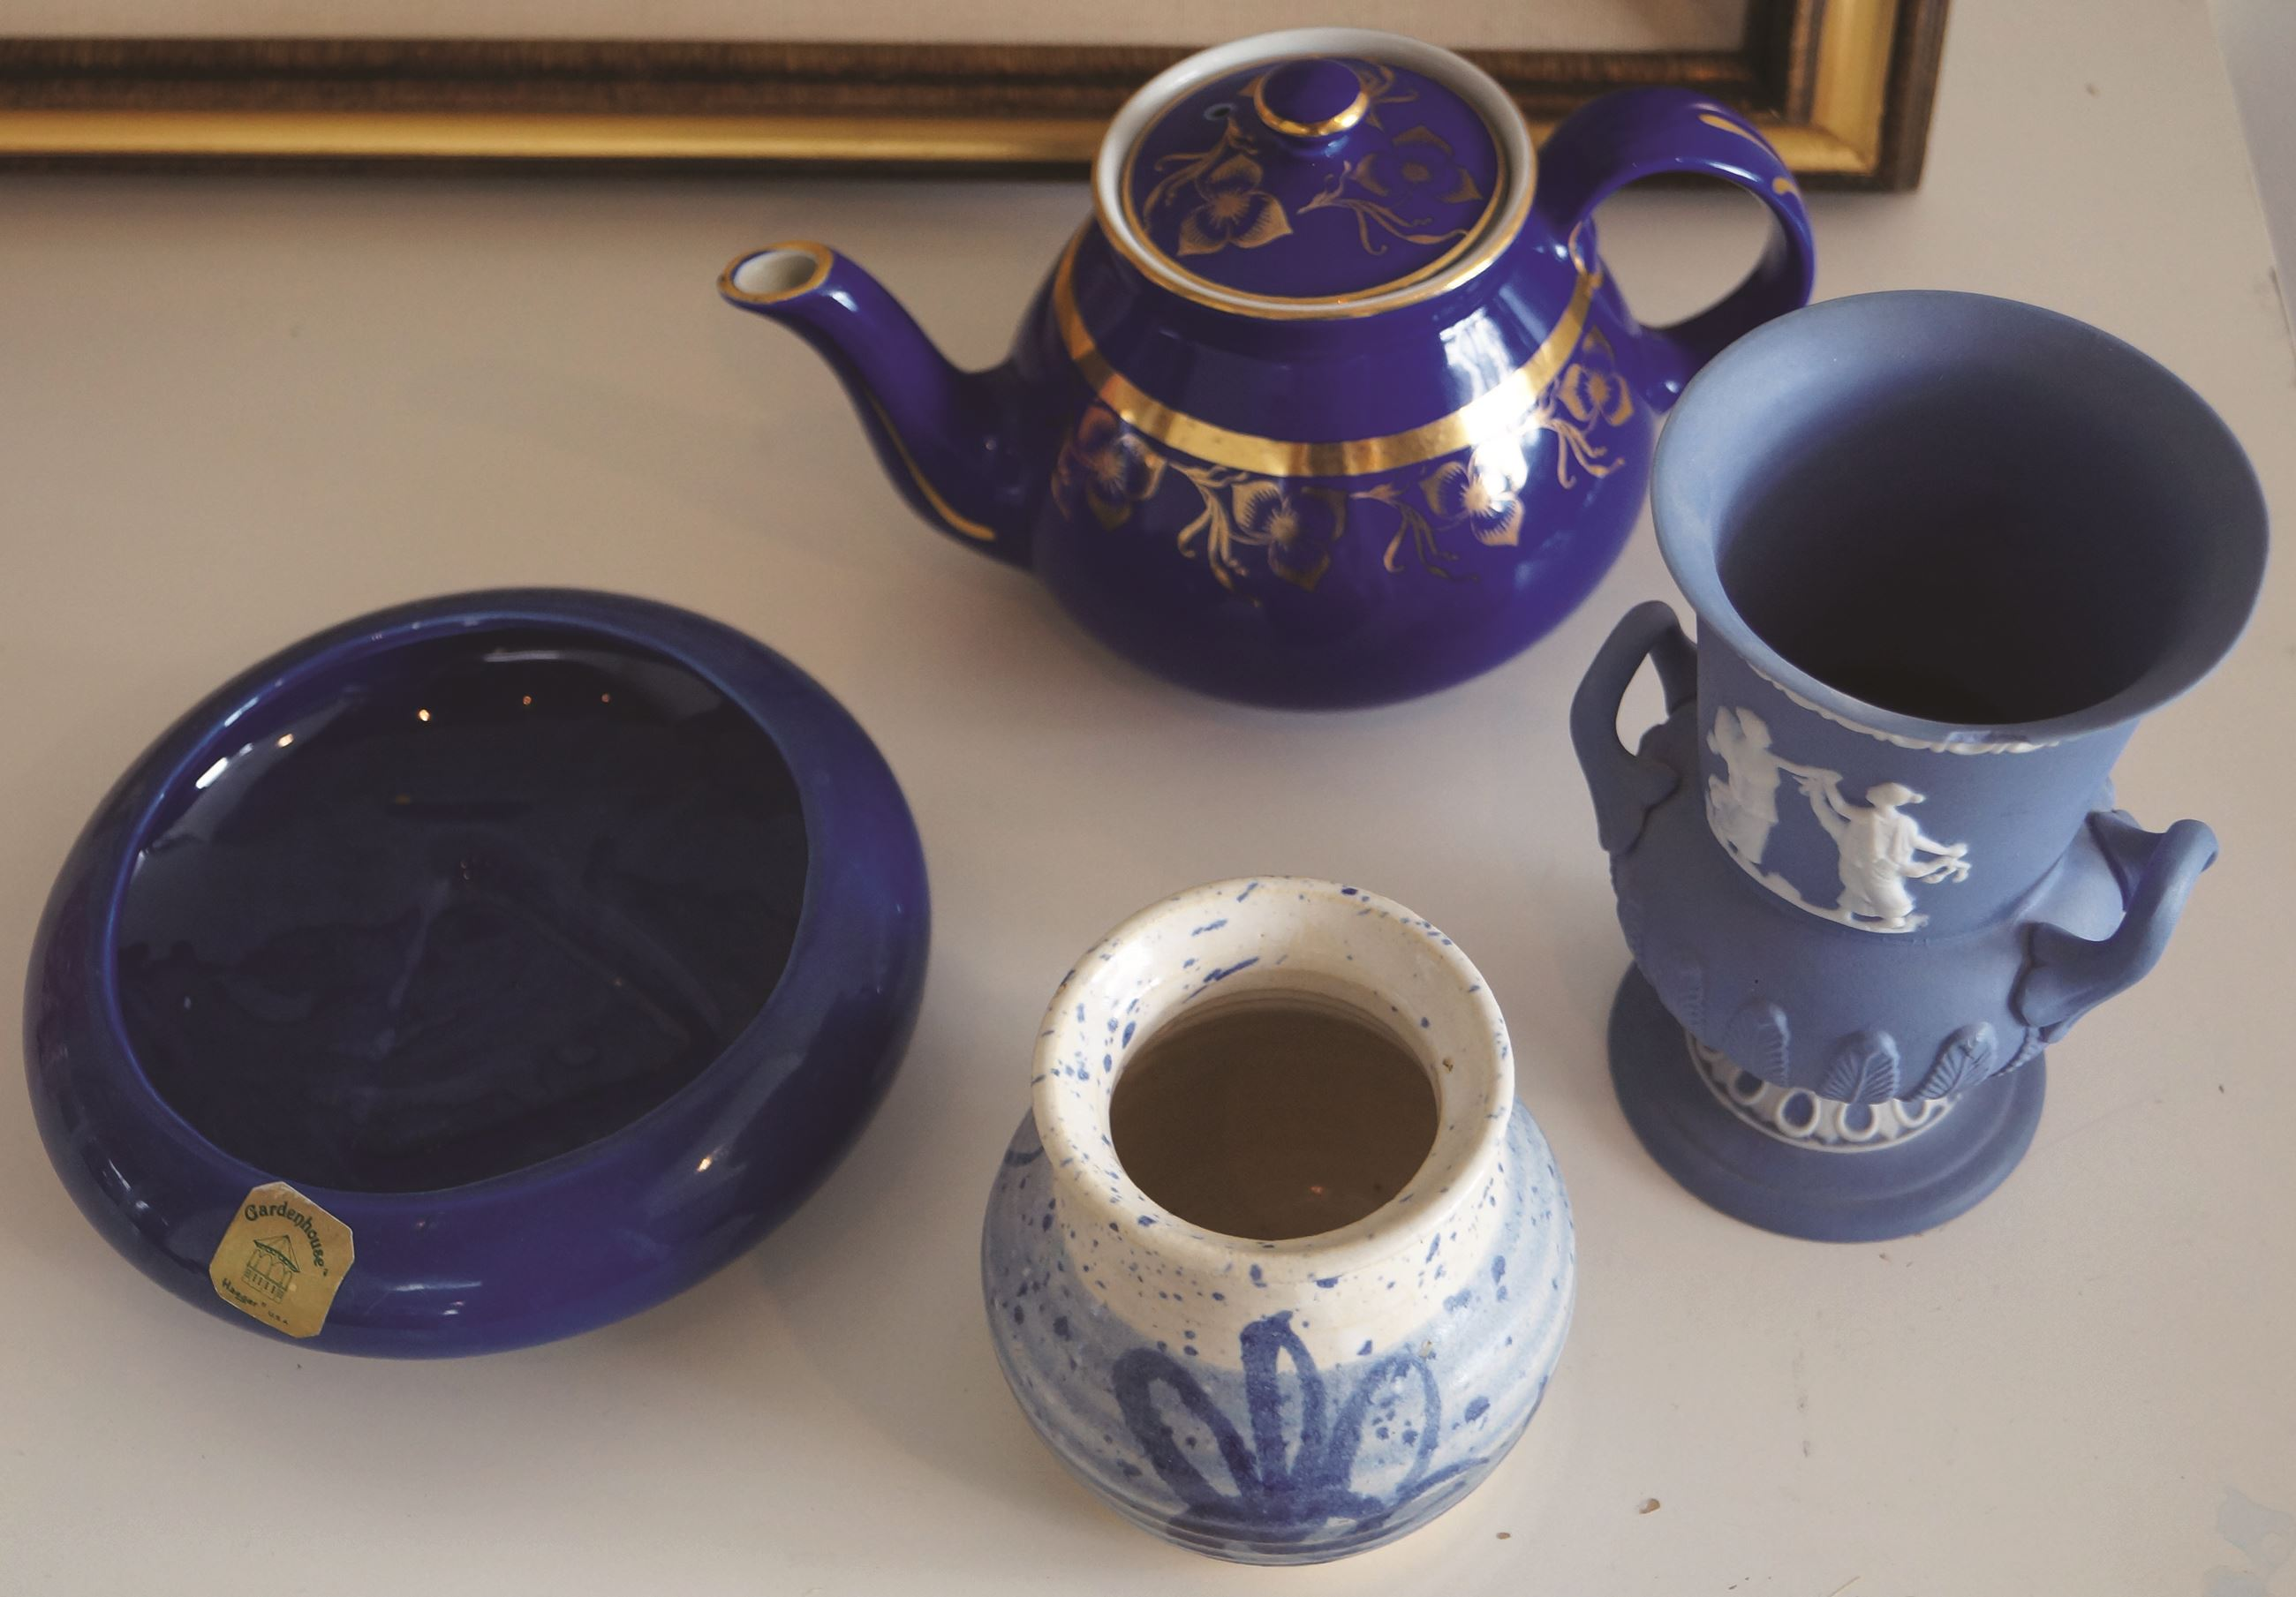 Blue pottery, teapot